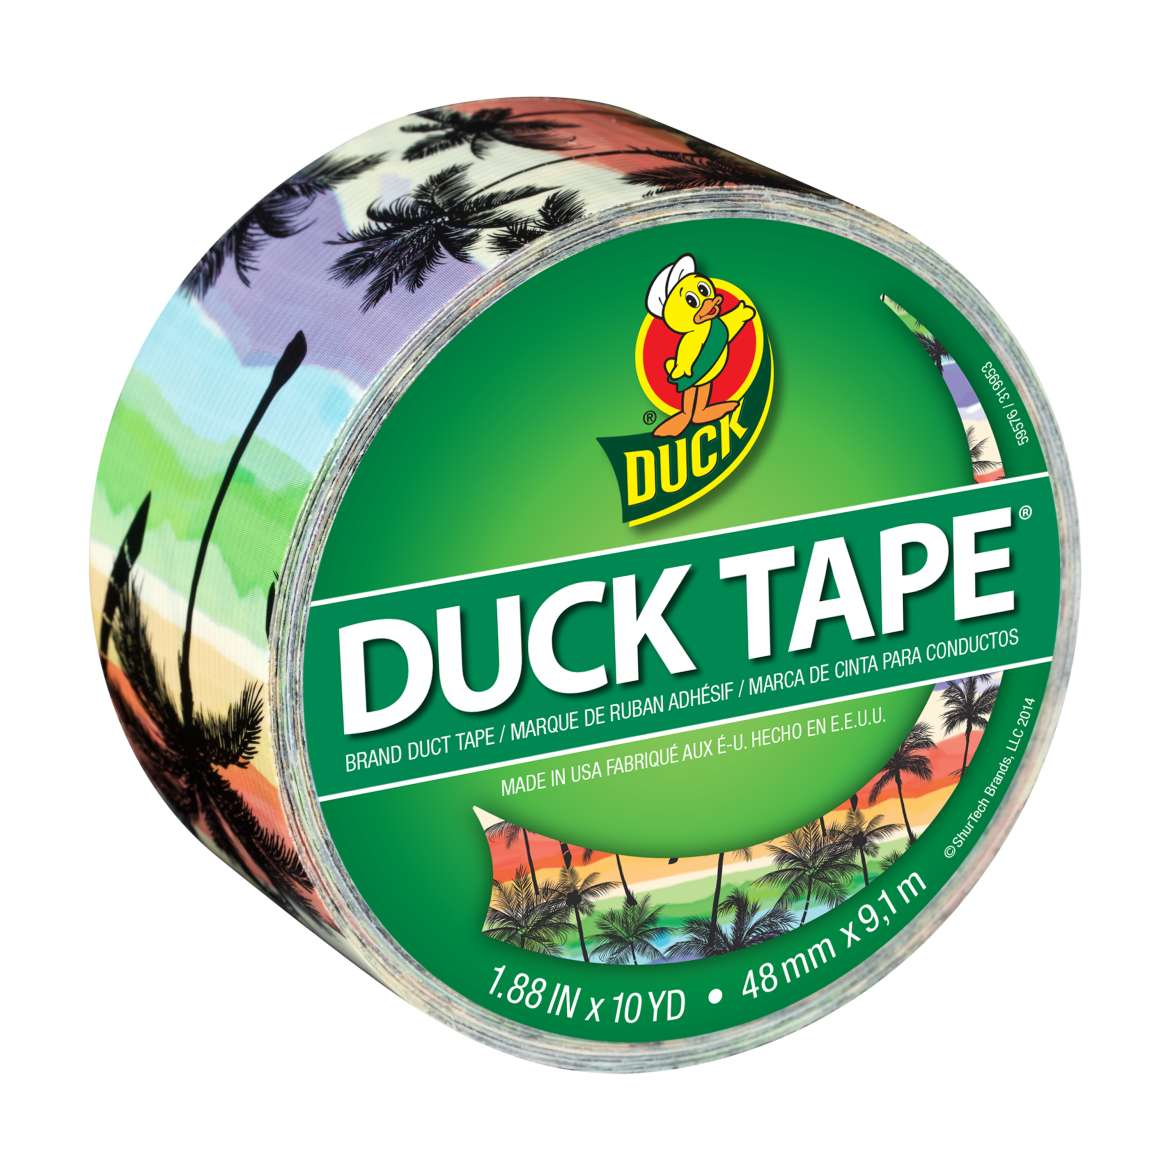 Printed Duck Tape® Brand Duct Tape - Sunset Strip, 1.88 in. x 10 yd. Image